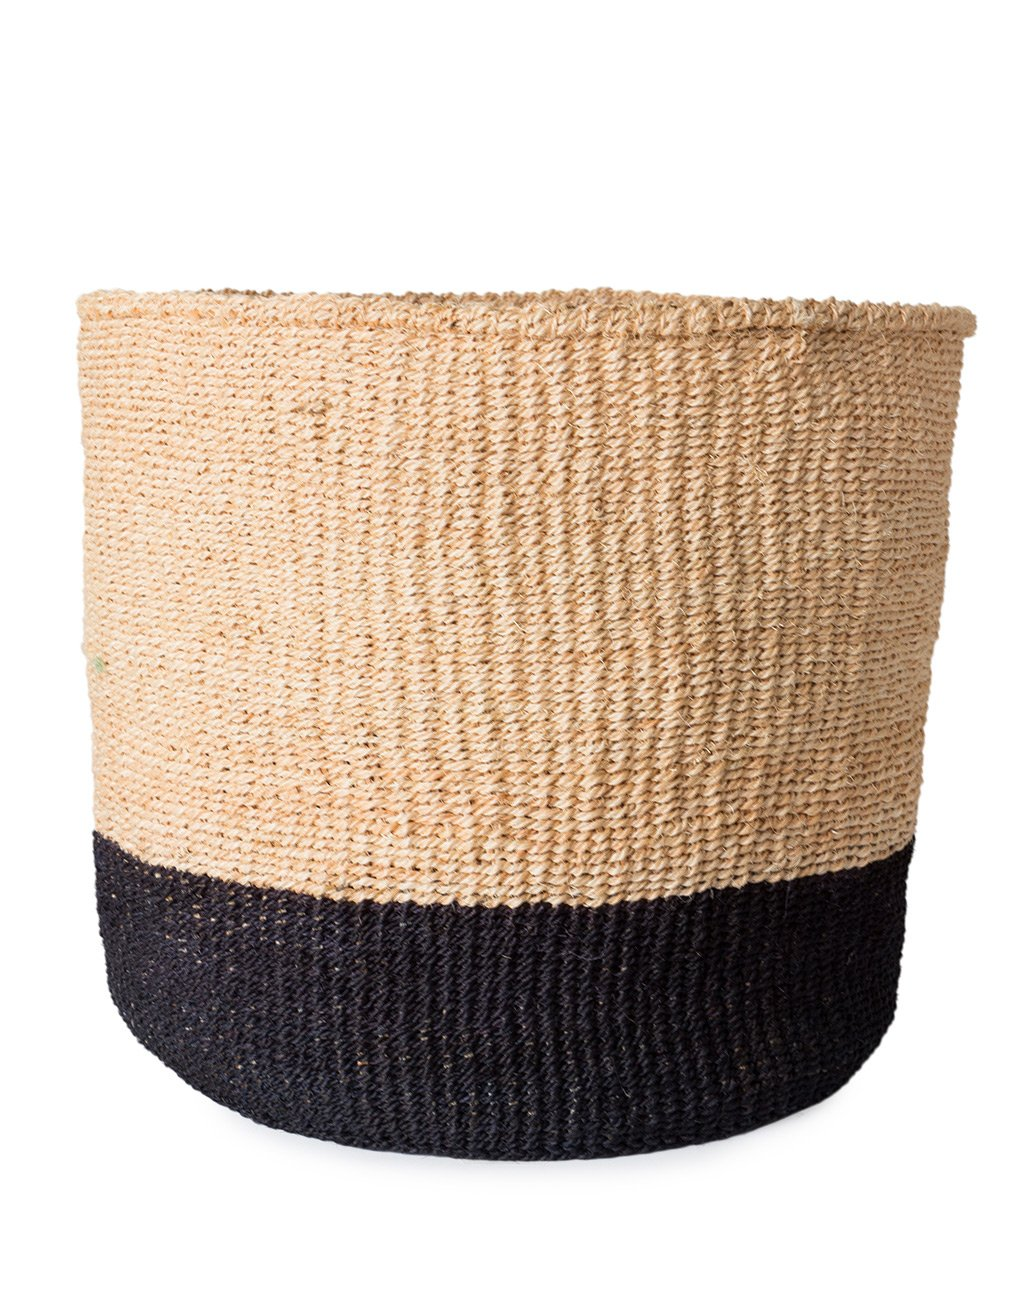 Sisal Storage Basket Colourblock Black